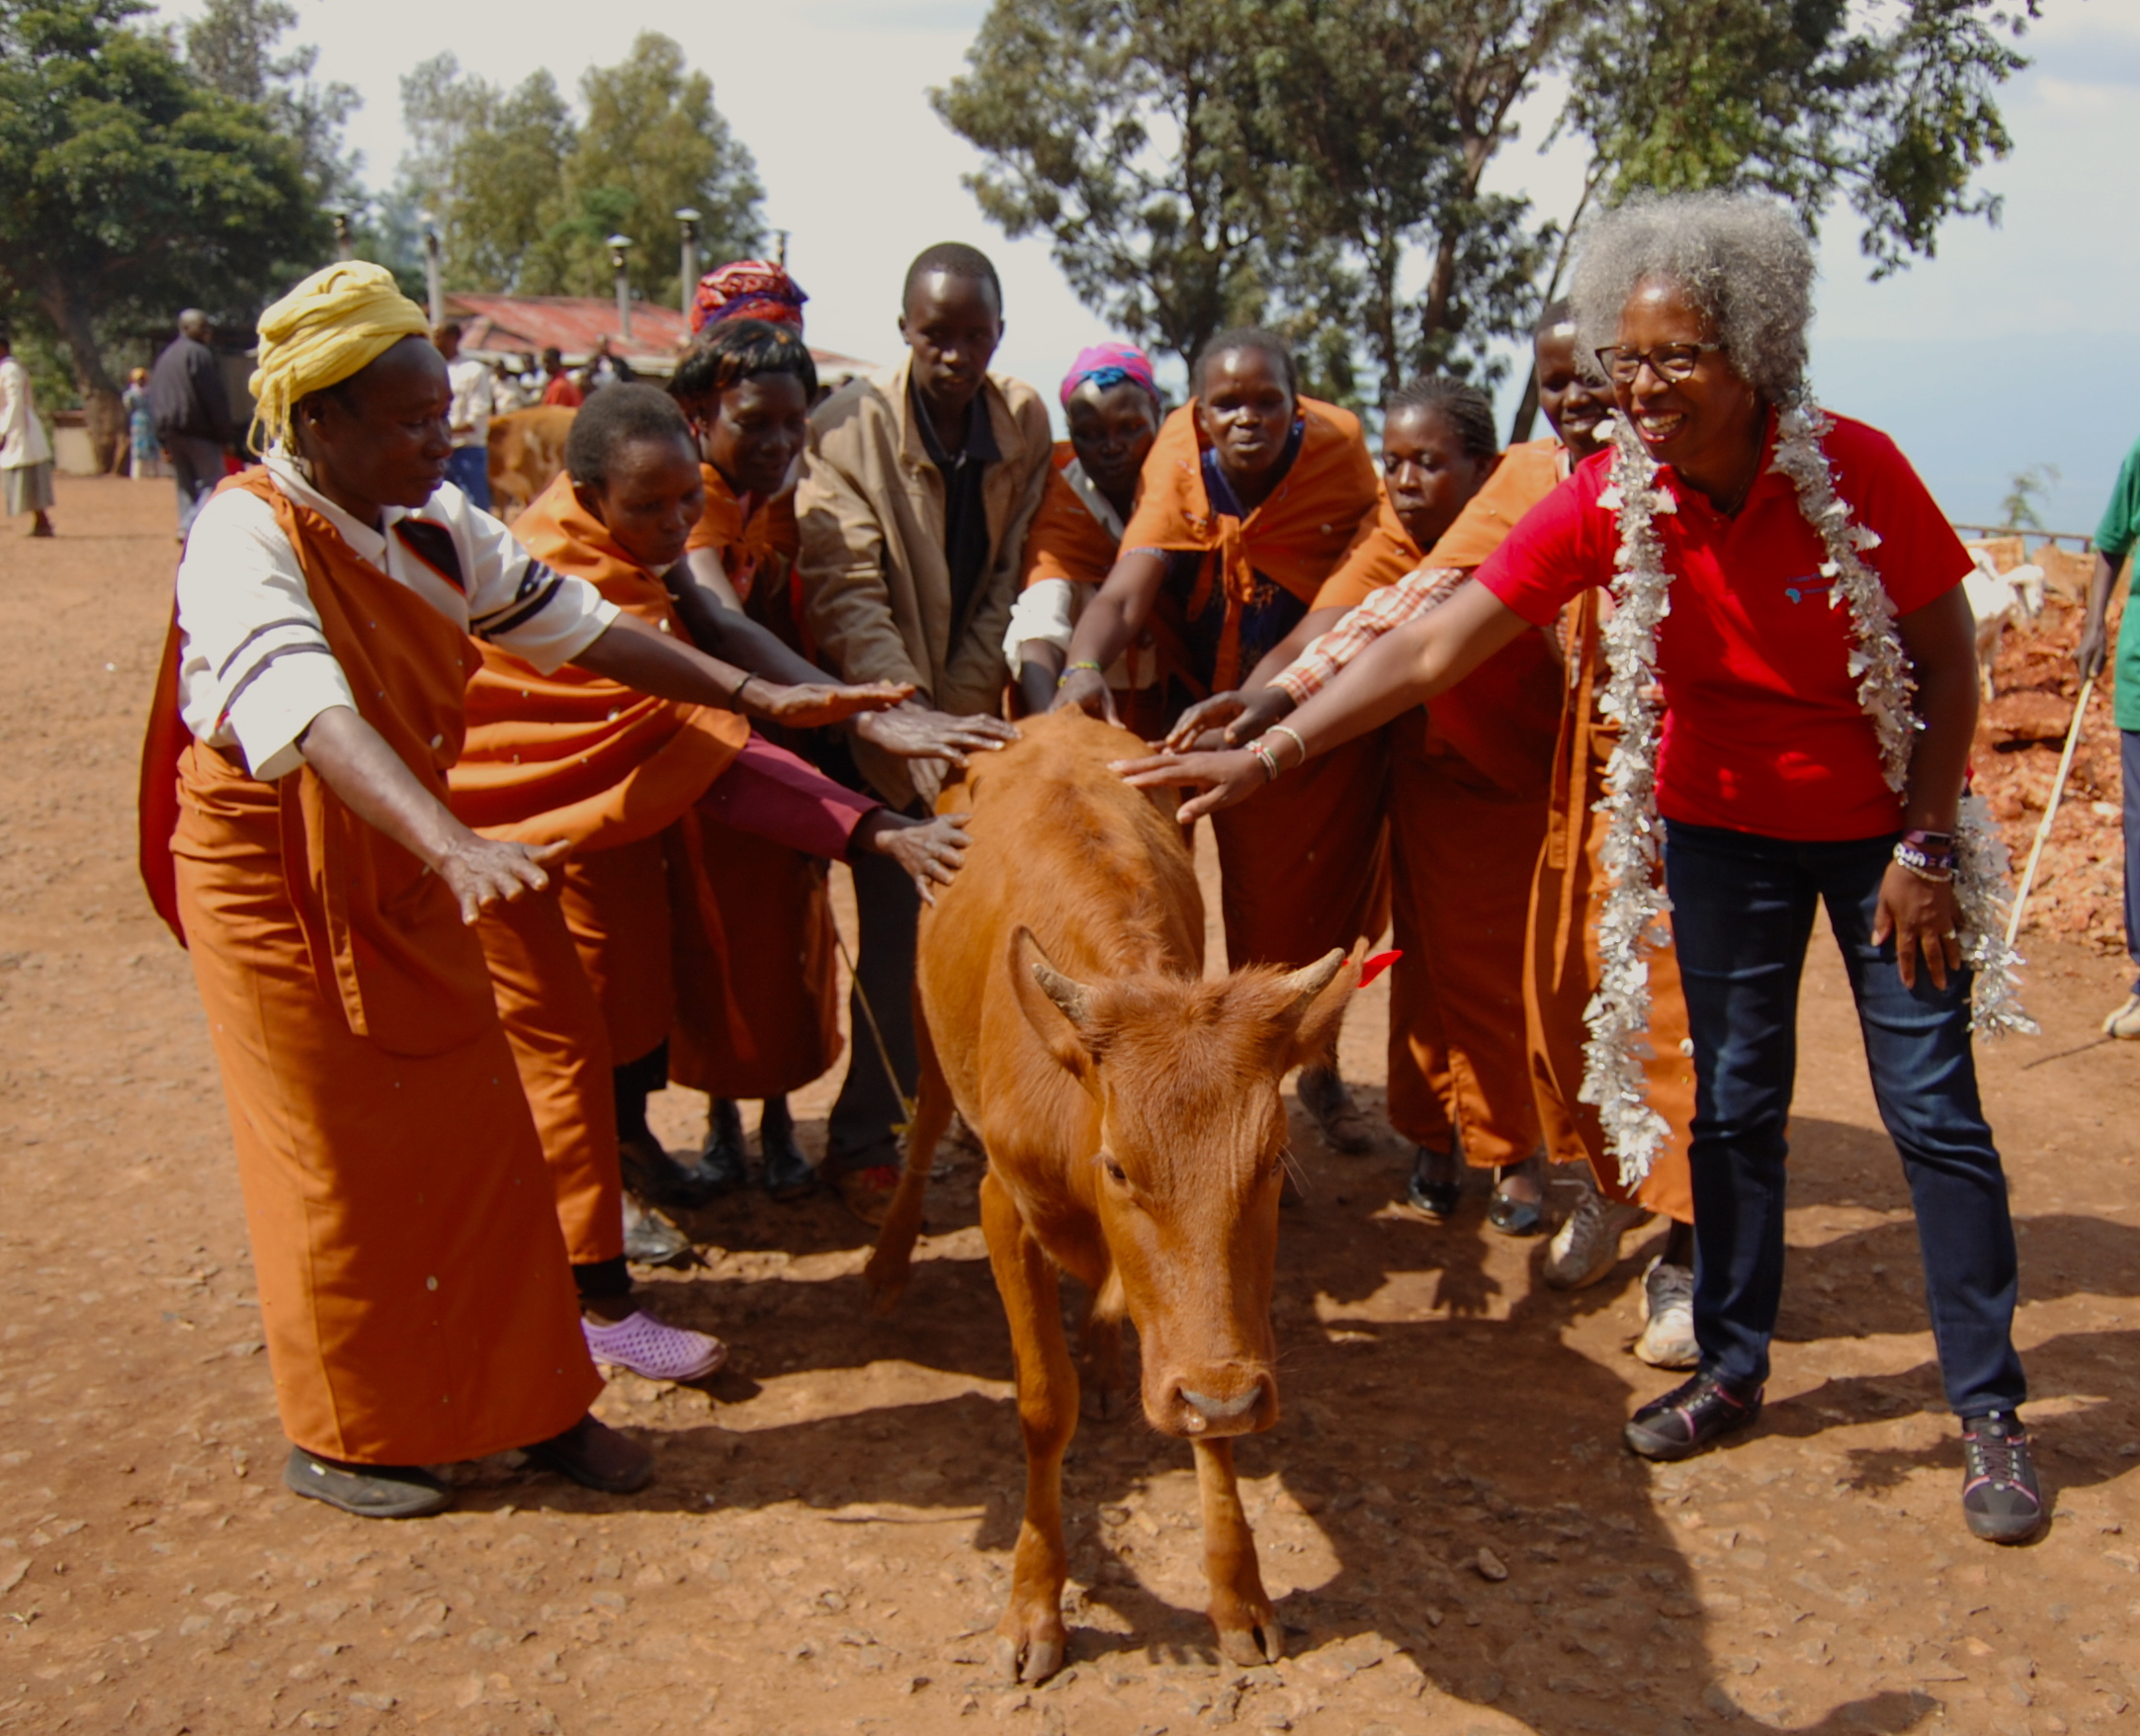 Anna Garvin, CWA volunteer, participates in a cow blessing as a woman receives the gift of her lifetime.